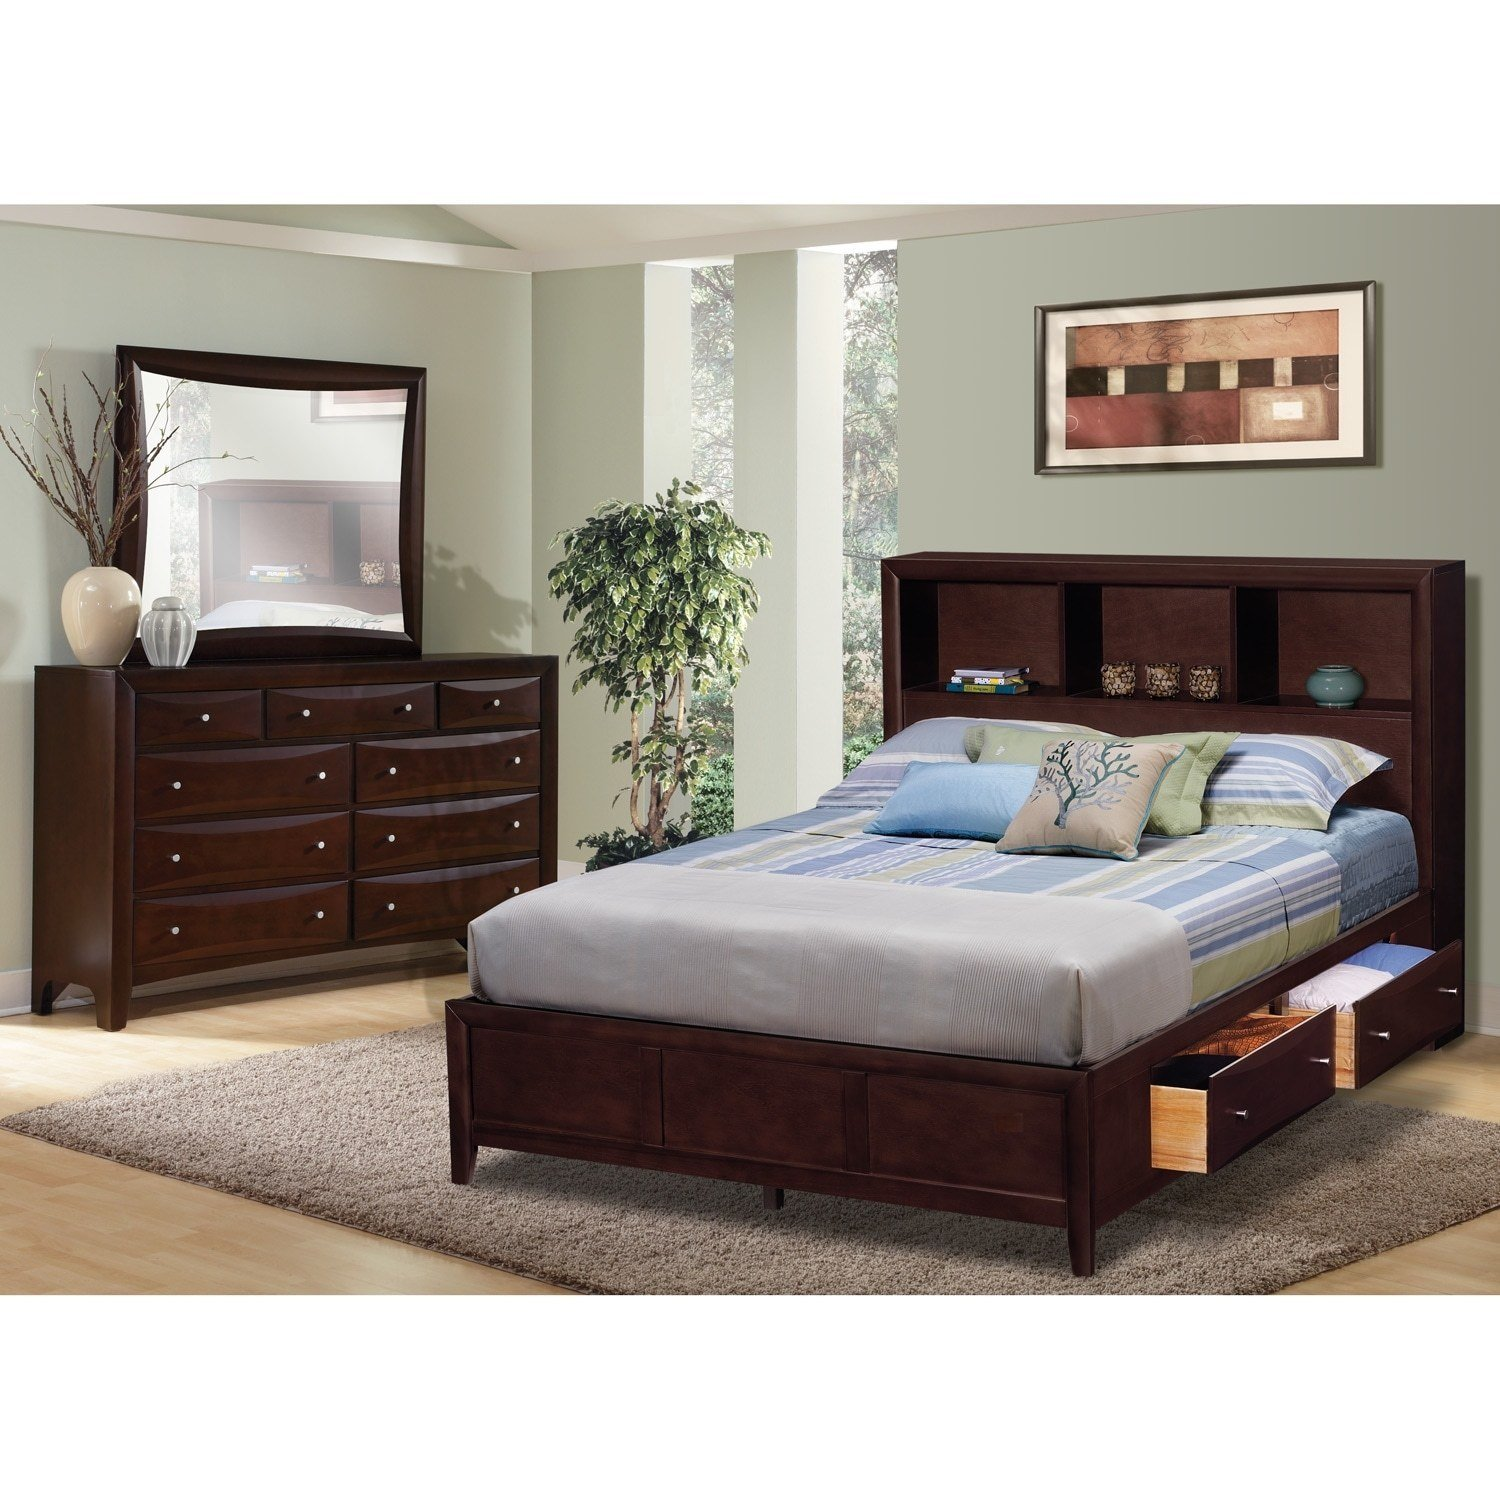 Best Kensington 5 Pc King Wall Bedroom Furniture Com With Pictures